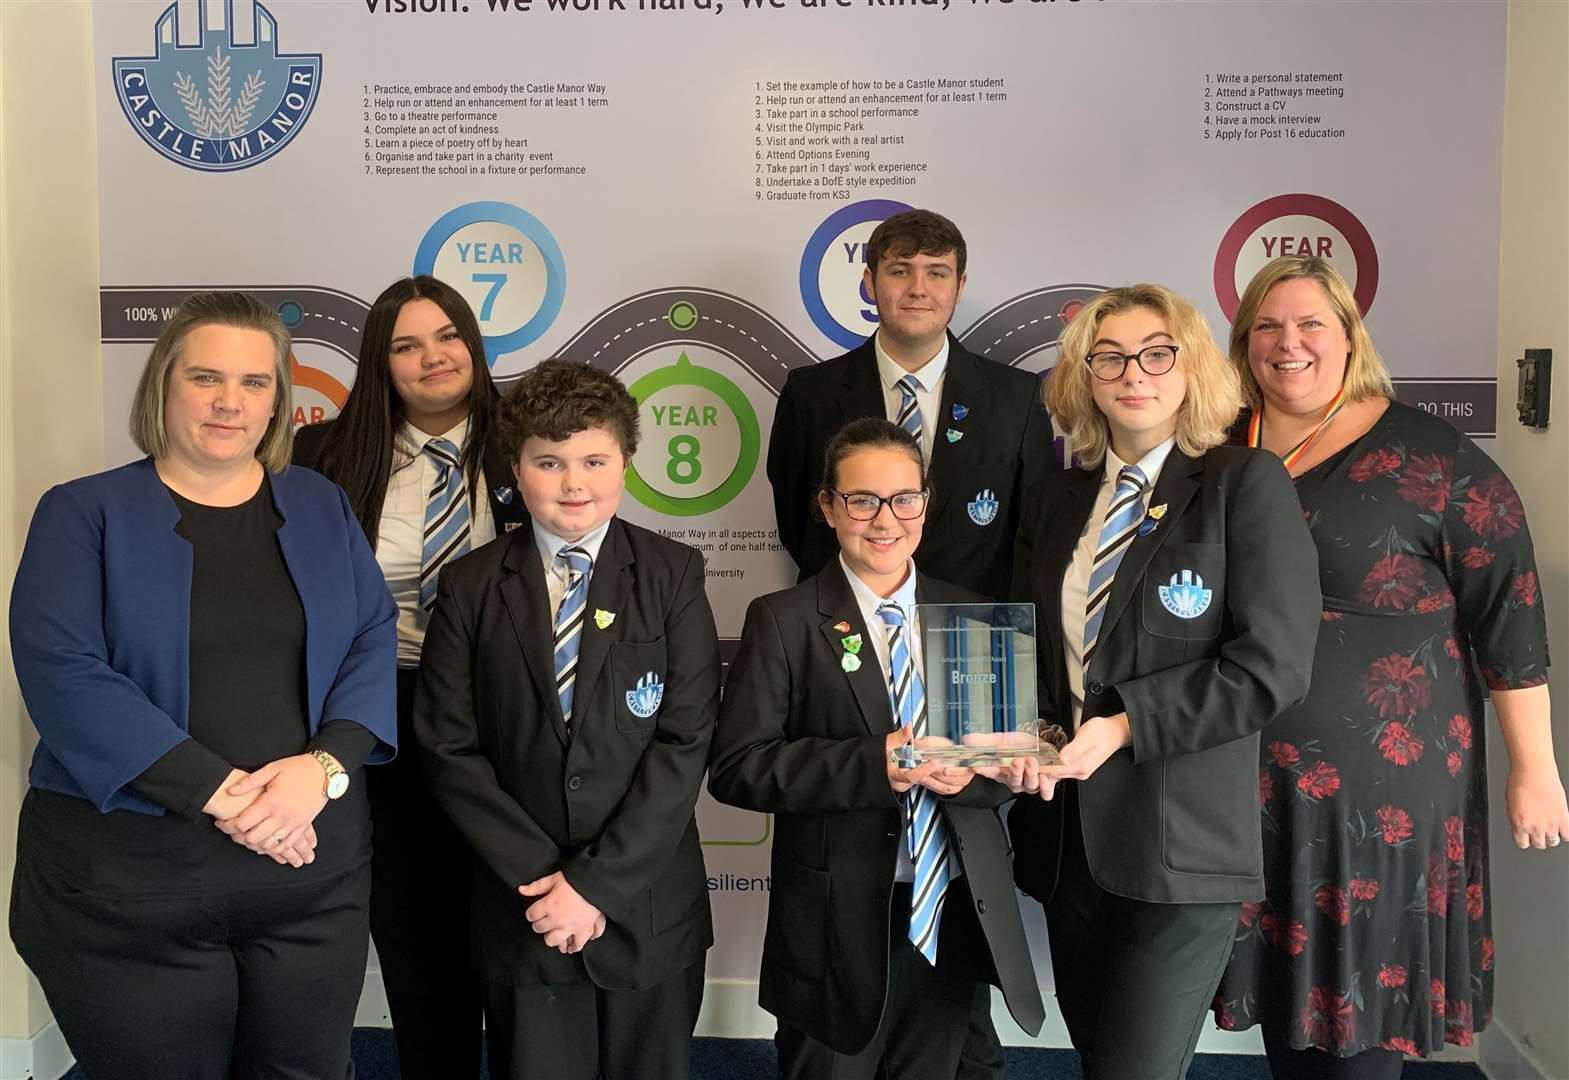 School's focus on mental health support is rewarded